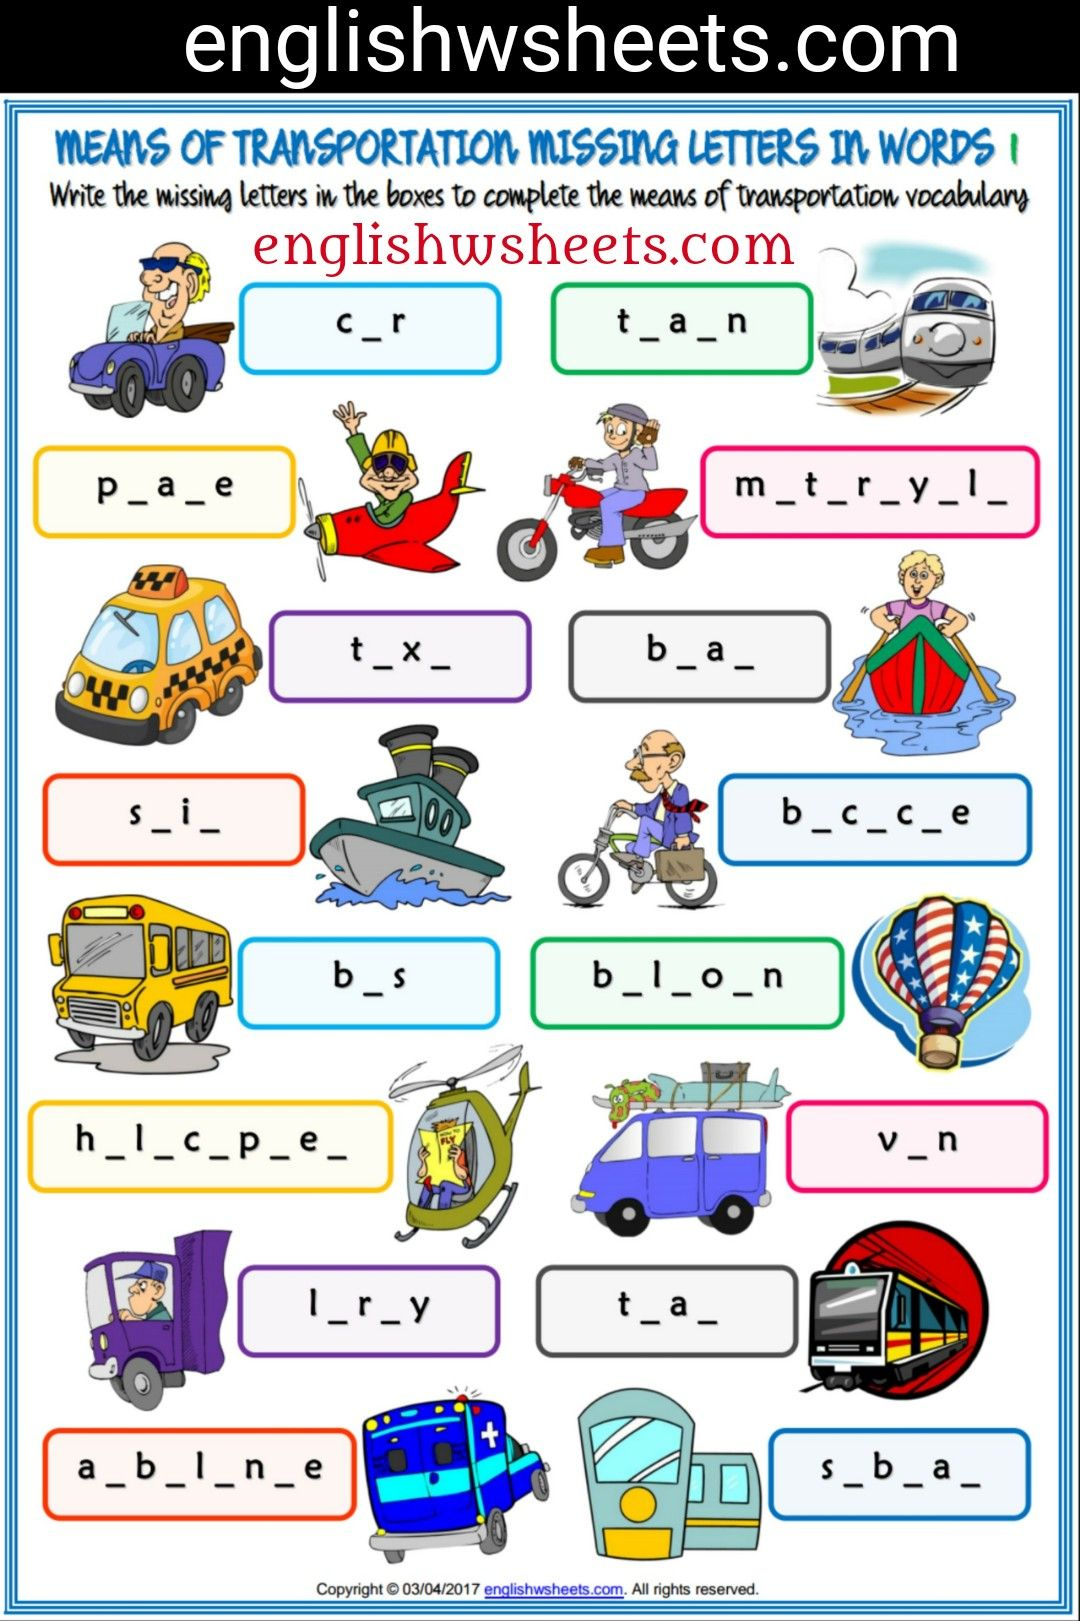 Means Of Transportation Esl Printable Missing Letters In